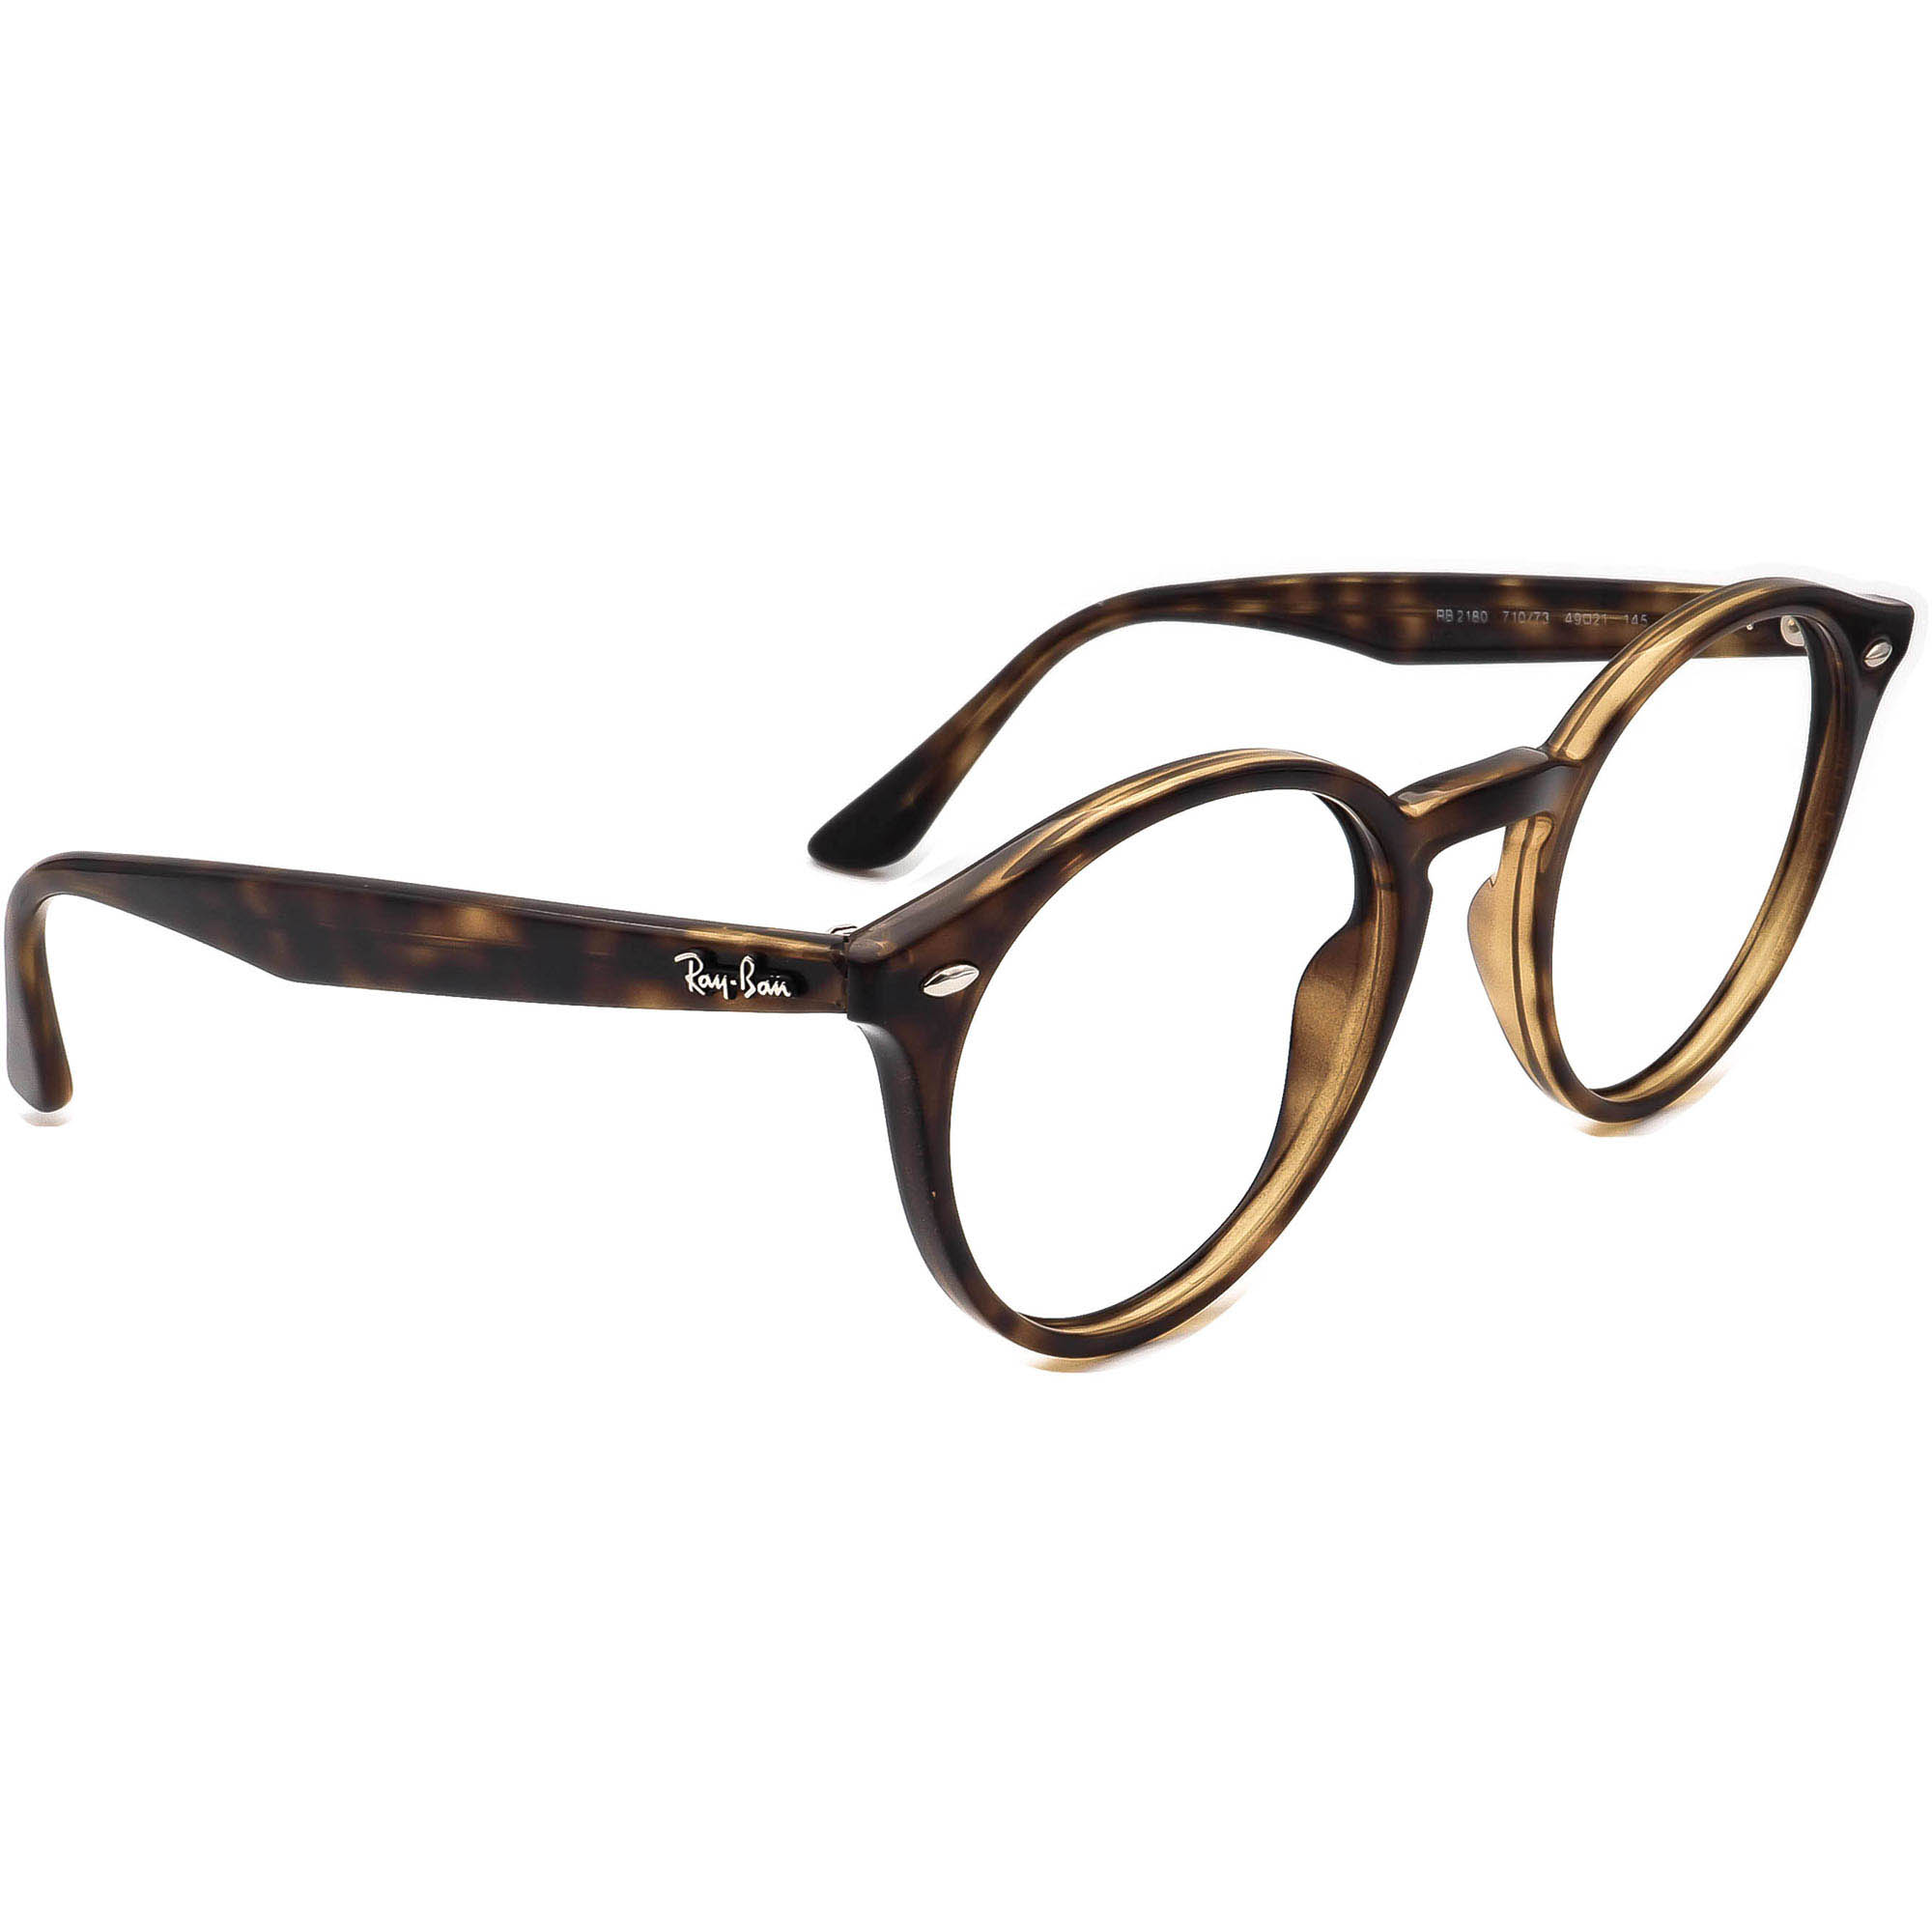 Ray-Ban RB 2180 710/73 Sunglasses Frame Only